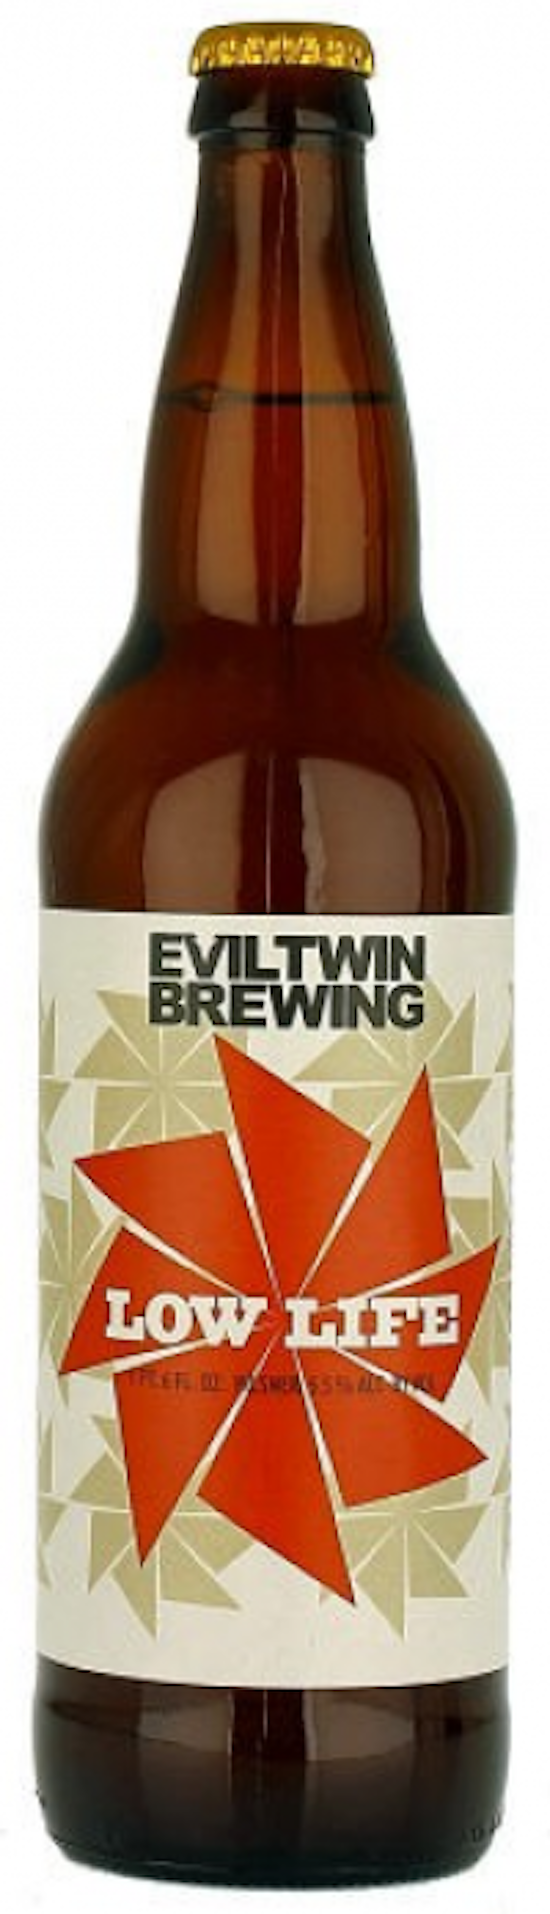 evil-twin-brewing-low-life_1512502928